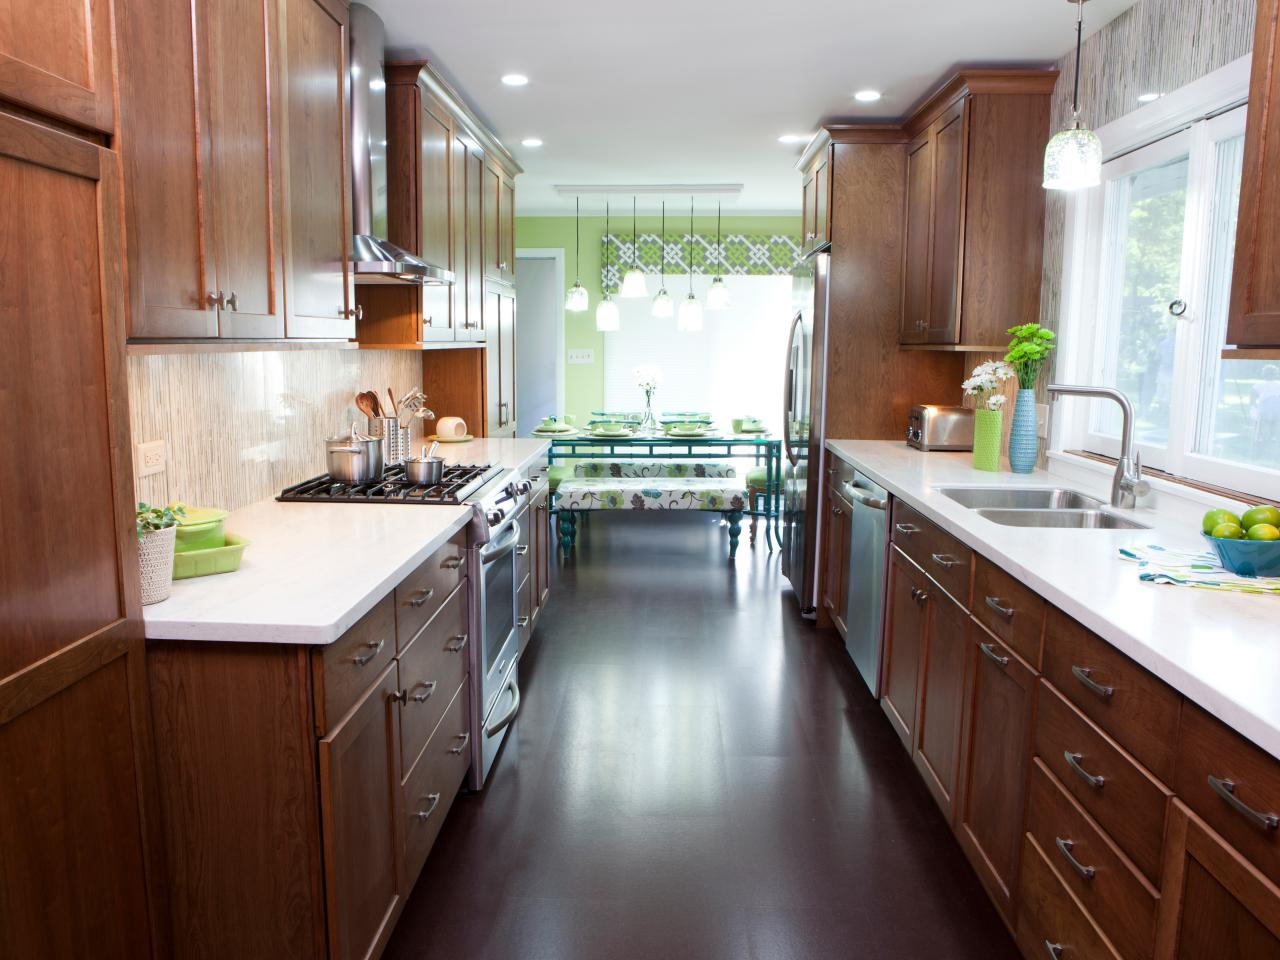 Galley kitchen designs hgtv for Kichan dizain